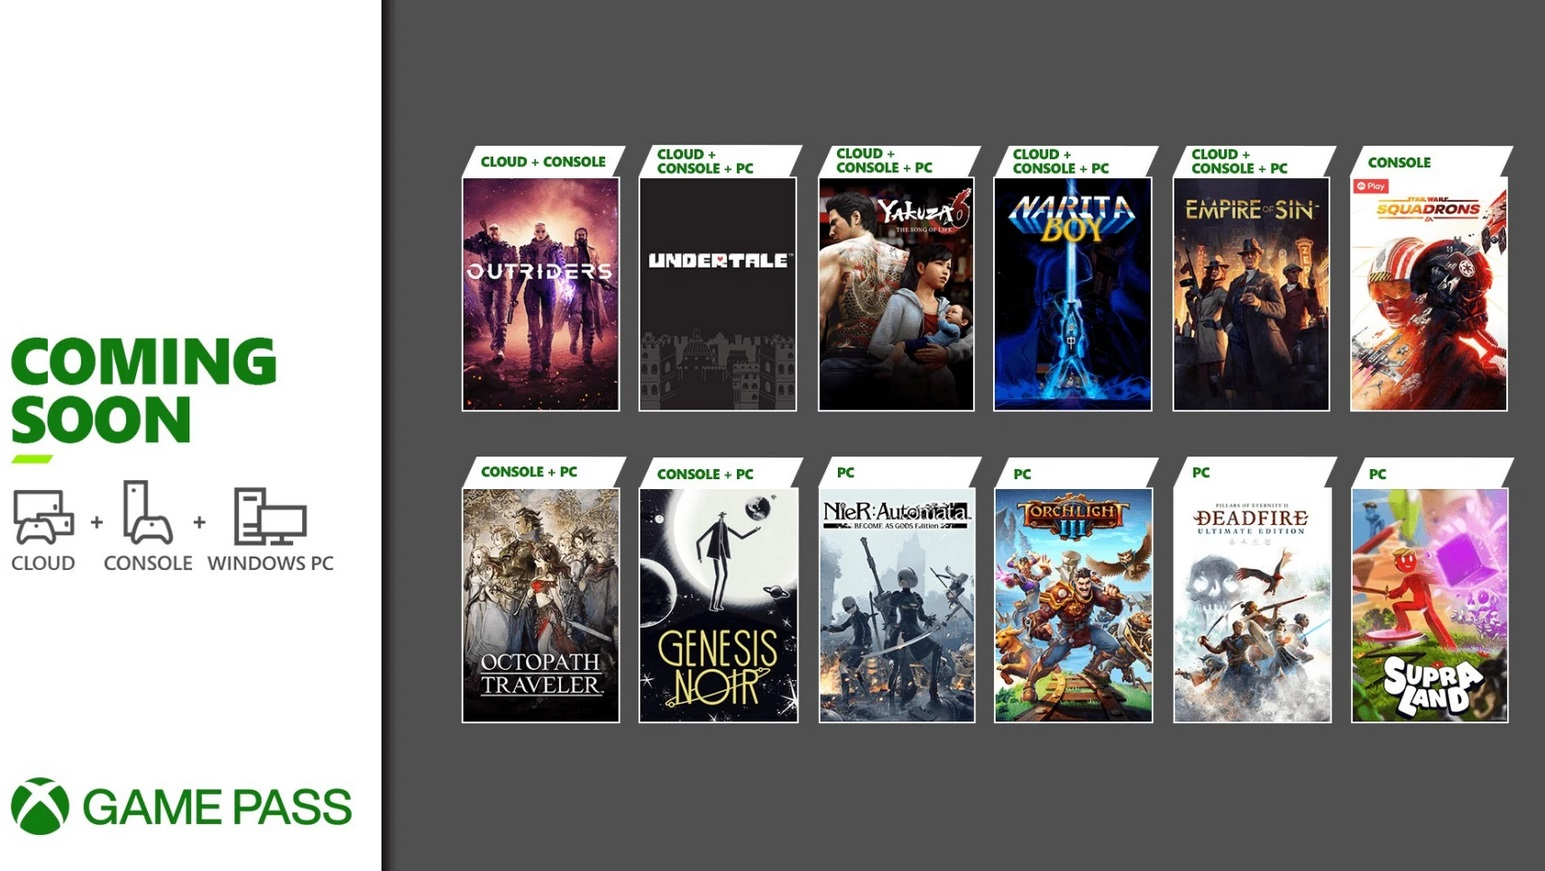 Xbox Game Pass March headliners include Nier: Automata on PC, Octopath Traveler on Xbox, and Empire of Sin screenshot